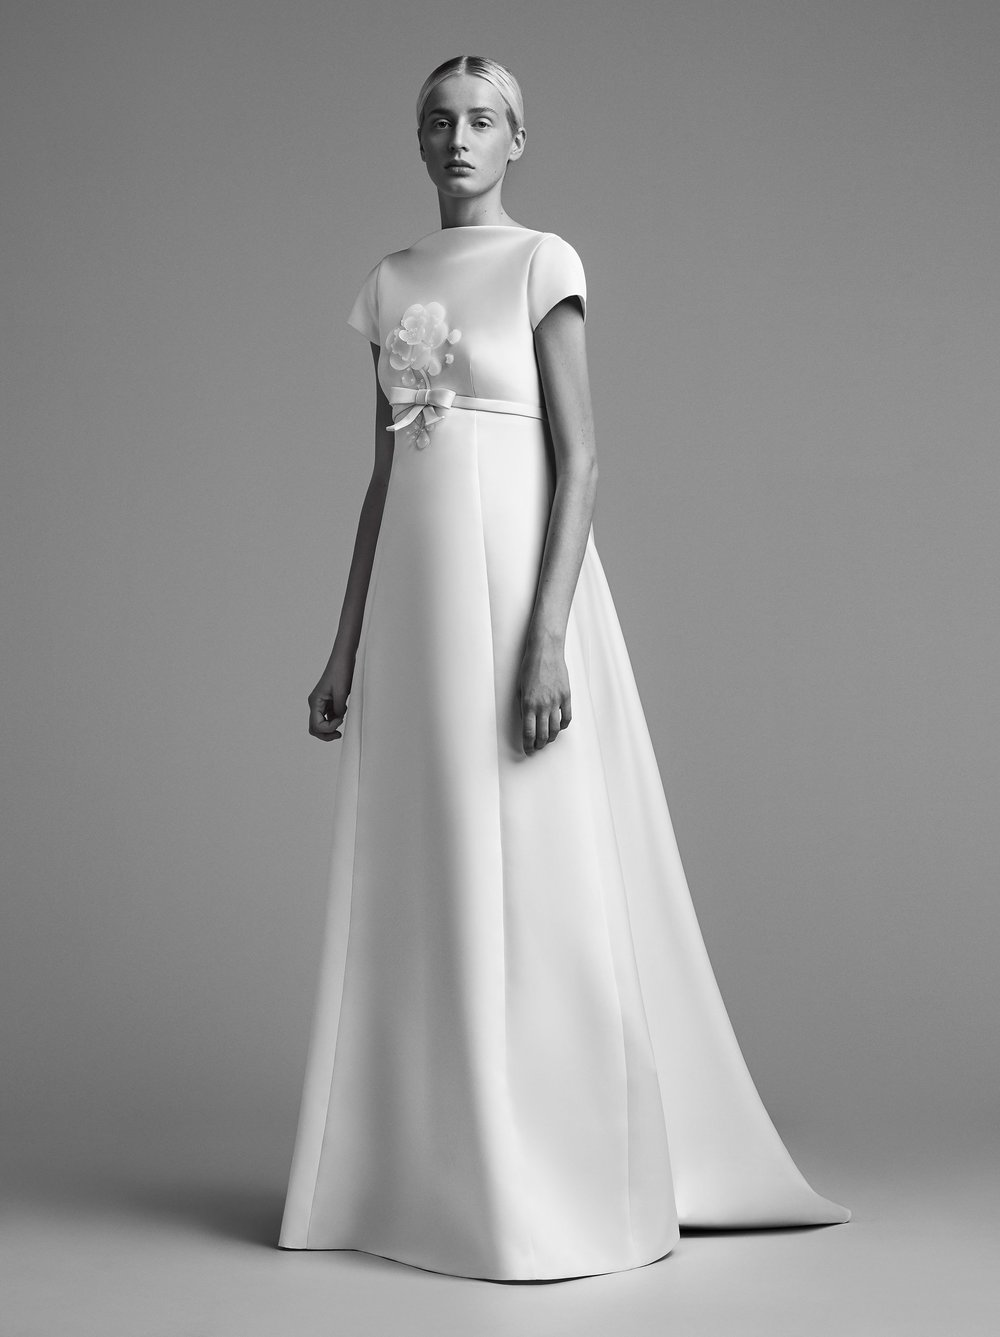 22-viktor-and-rolf-mariage-bridal-fall-2018.jpg